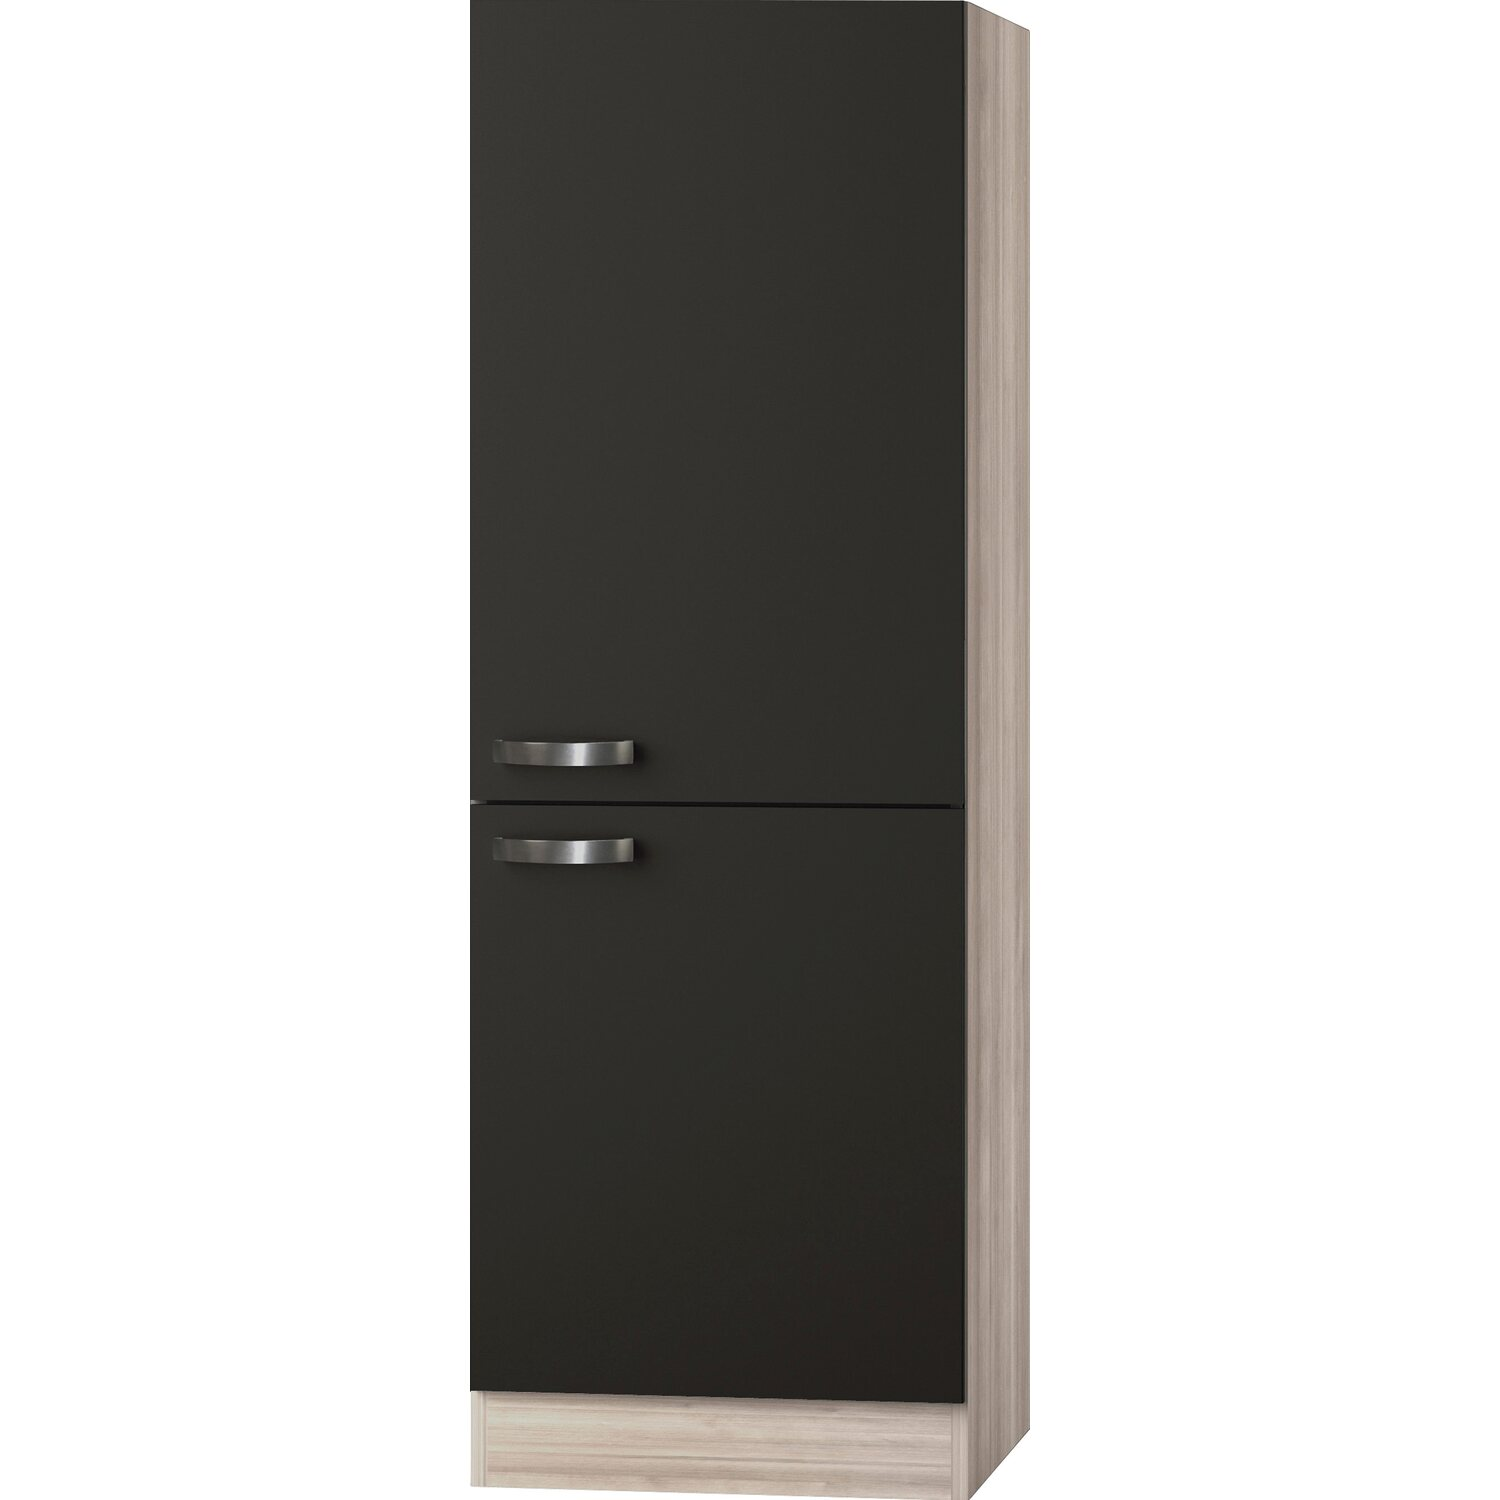 optifit midischrank f r k hlschrank ohne arbeitsplatte optikult faro 60 cm kaufen bei obi. Black Bedroom Furniture Sets. Home Design Ideas